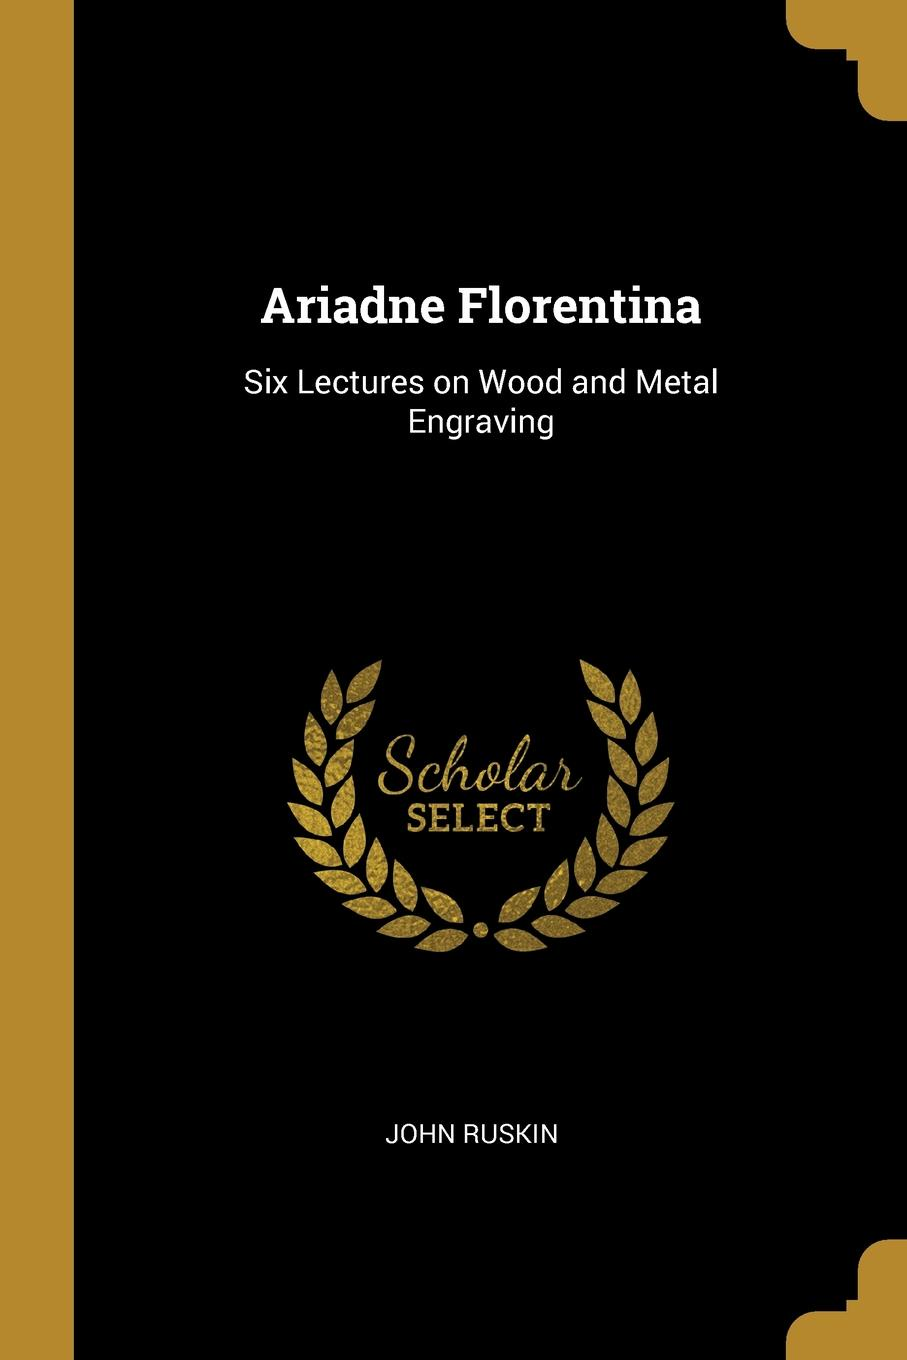 John Ruskin. Ariadne Florentina. Six Lectures on Wood and Metal Engraving